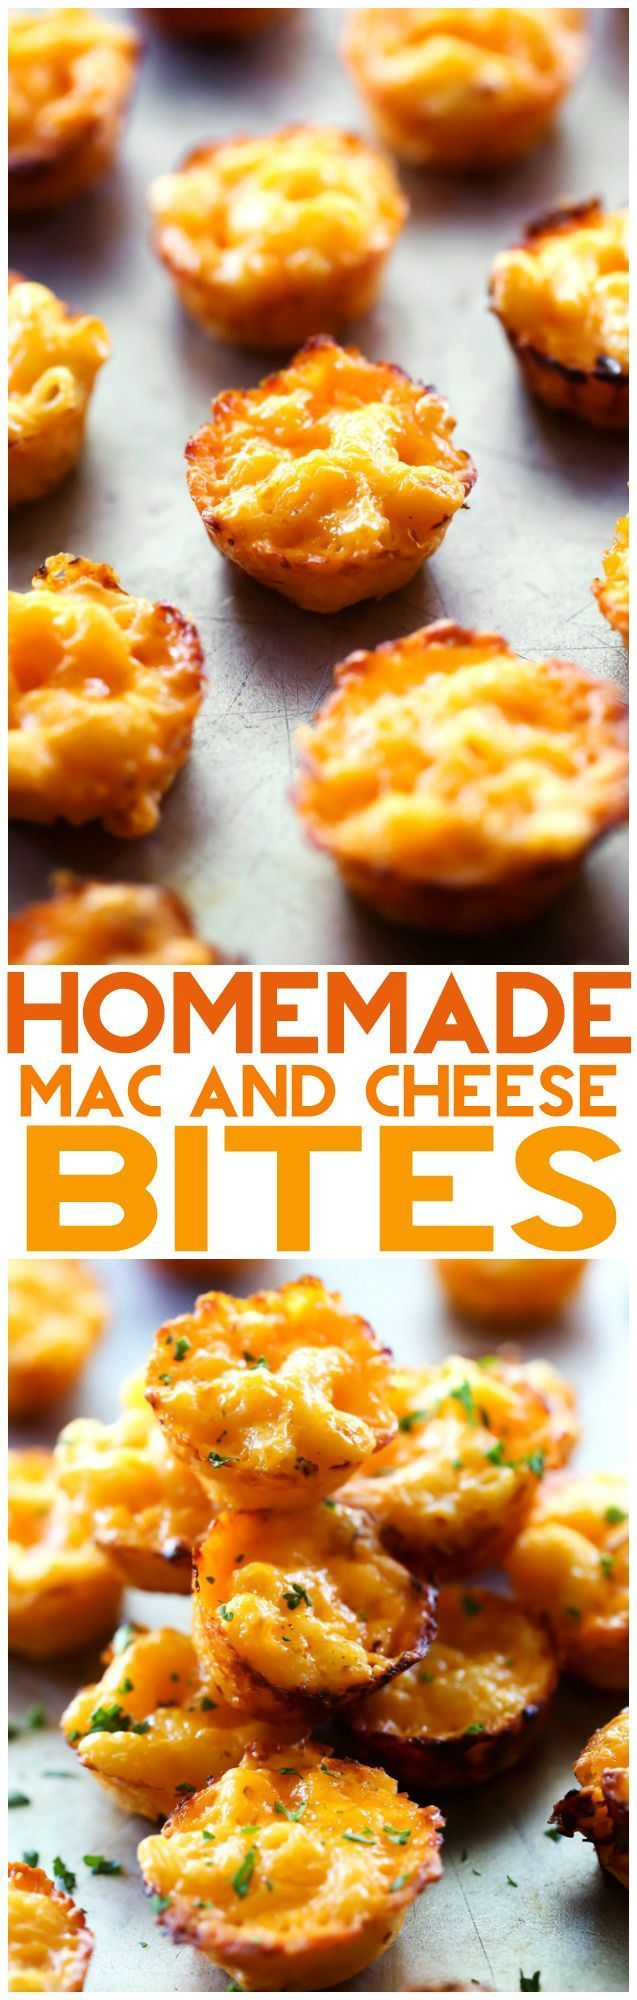 Homemade Mac and Cheese Bites... These are so simple and the perfect finger food